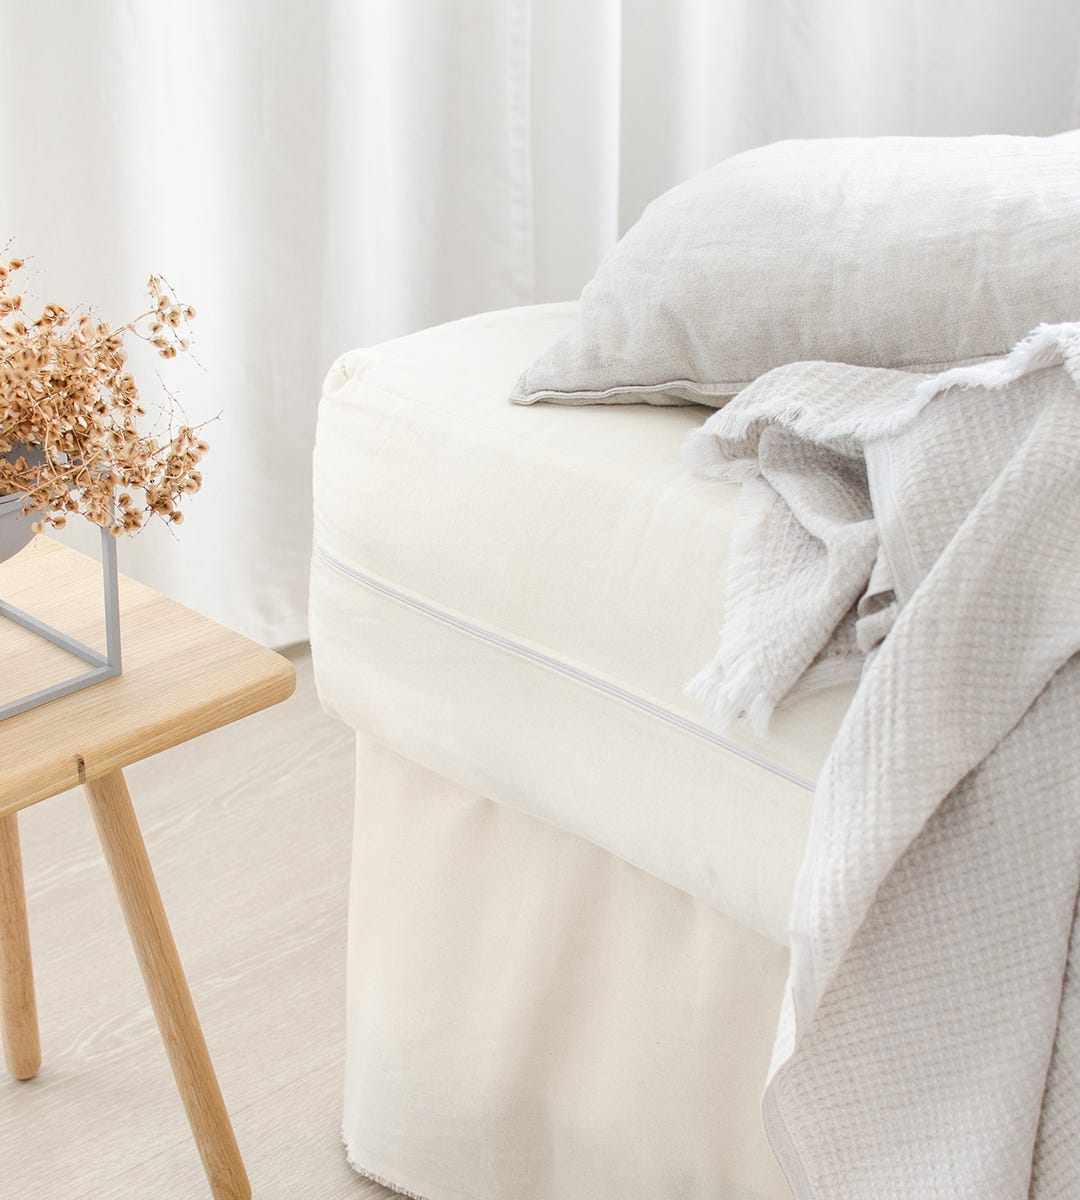 The Natural Bedding Company Mattress with Linen